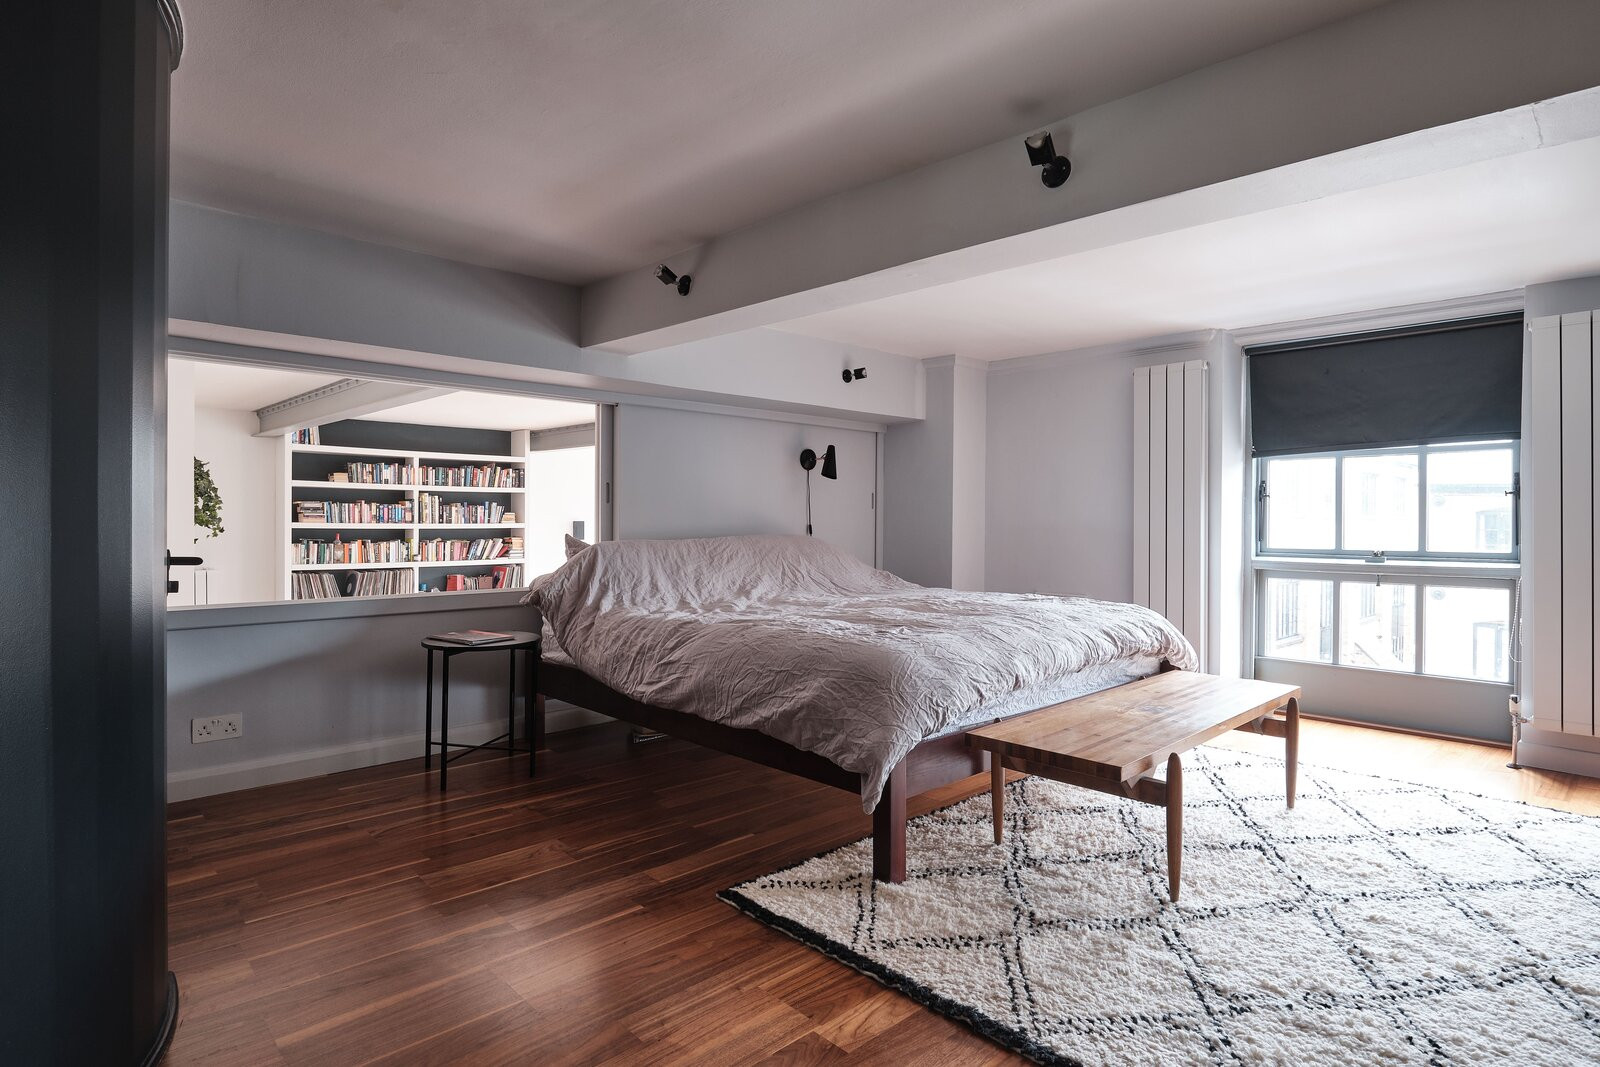 Bedroom, Bed, Wall Lighting, Dark Hardwood Floor, Bench, and Night Stands Upstairs, a movable wall partition opens the principal suite to the living area below.  Photo 9 of 13 in For £1.2M, Snag This Spacious London Flat Inside a Converted Victorian Schoolhouse